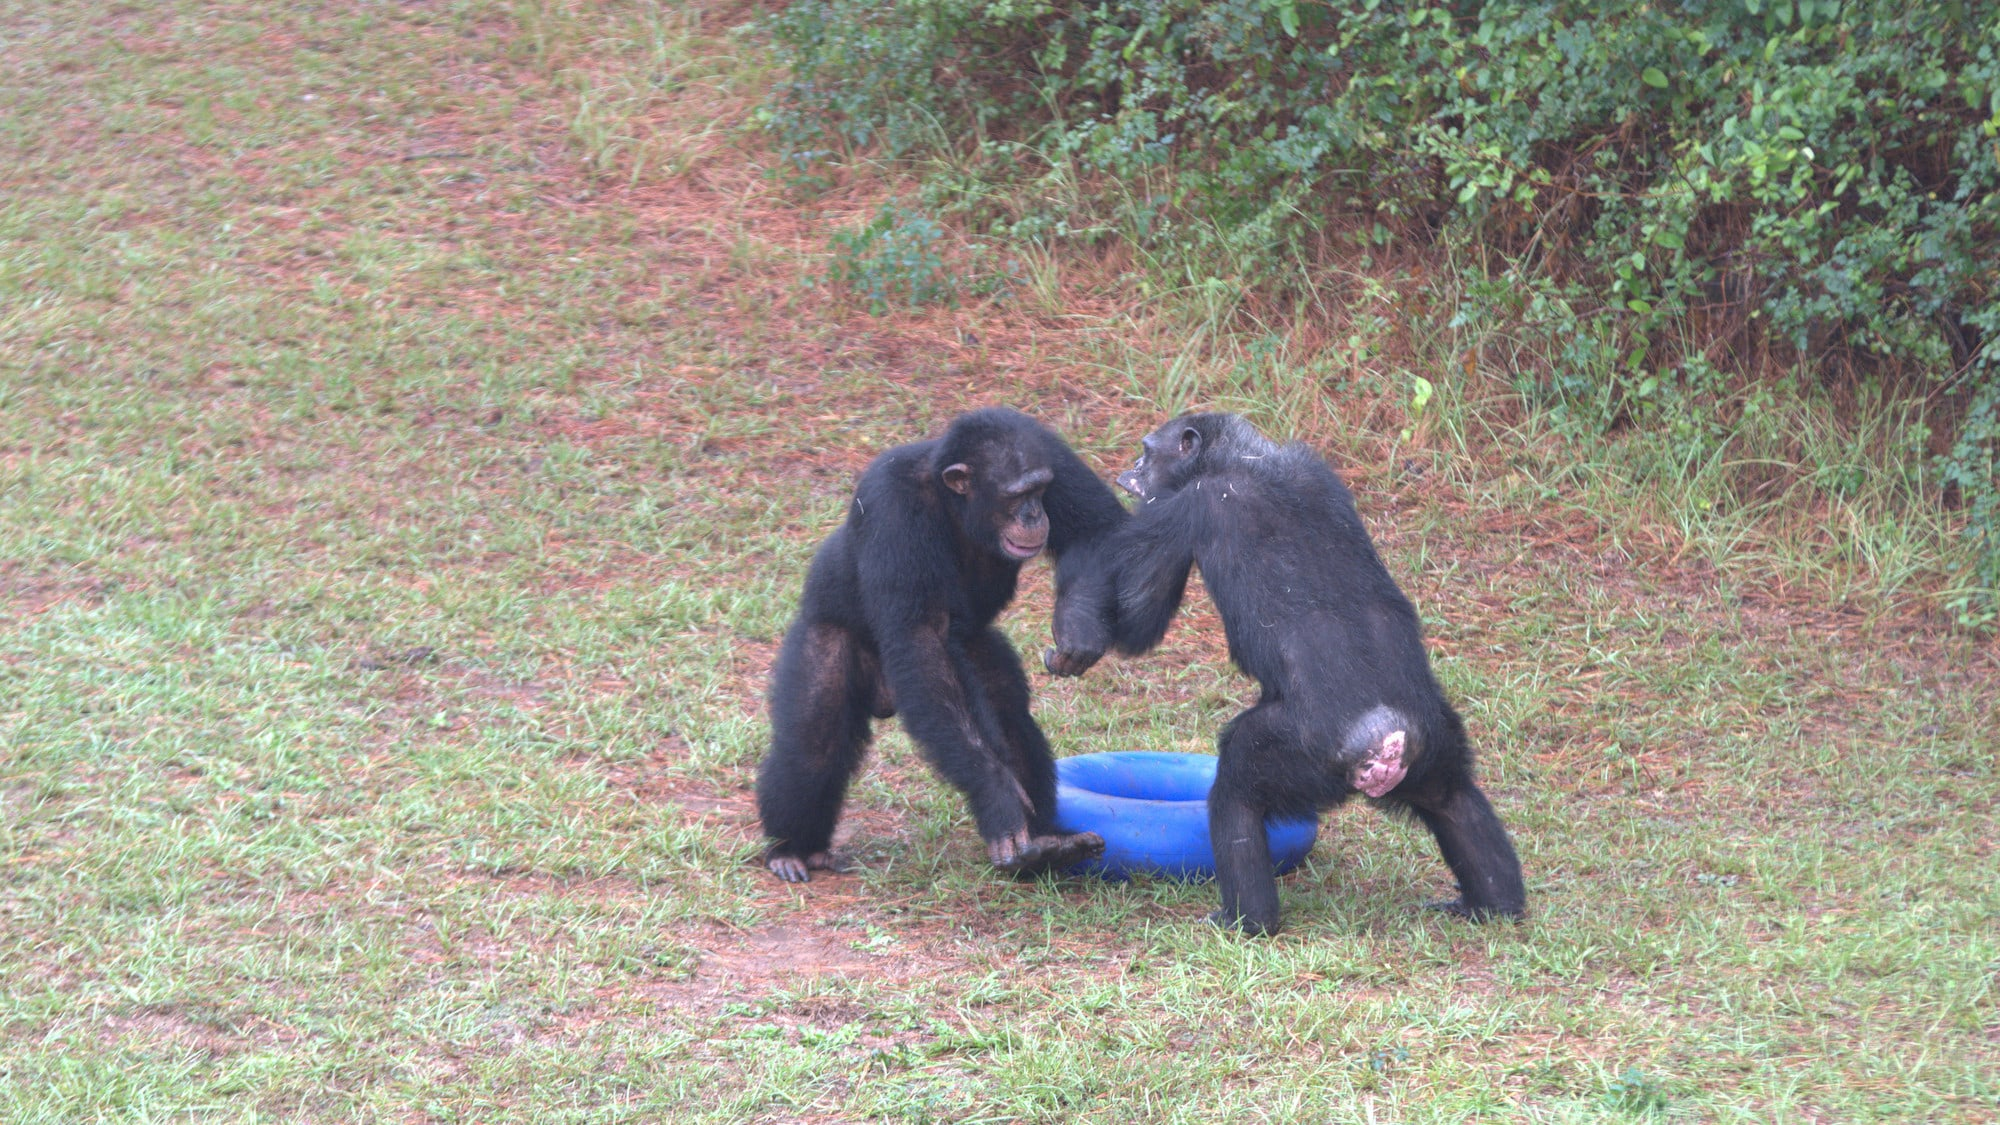 Jimmy Dean and another chimp standing bi-pedally squaring up to each other - asserting dominance. Sara Soda's group. (Nicholas Chapoy)